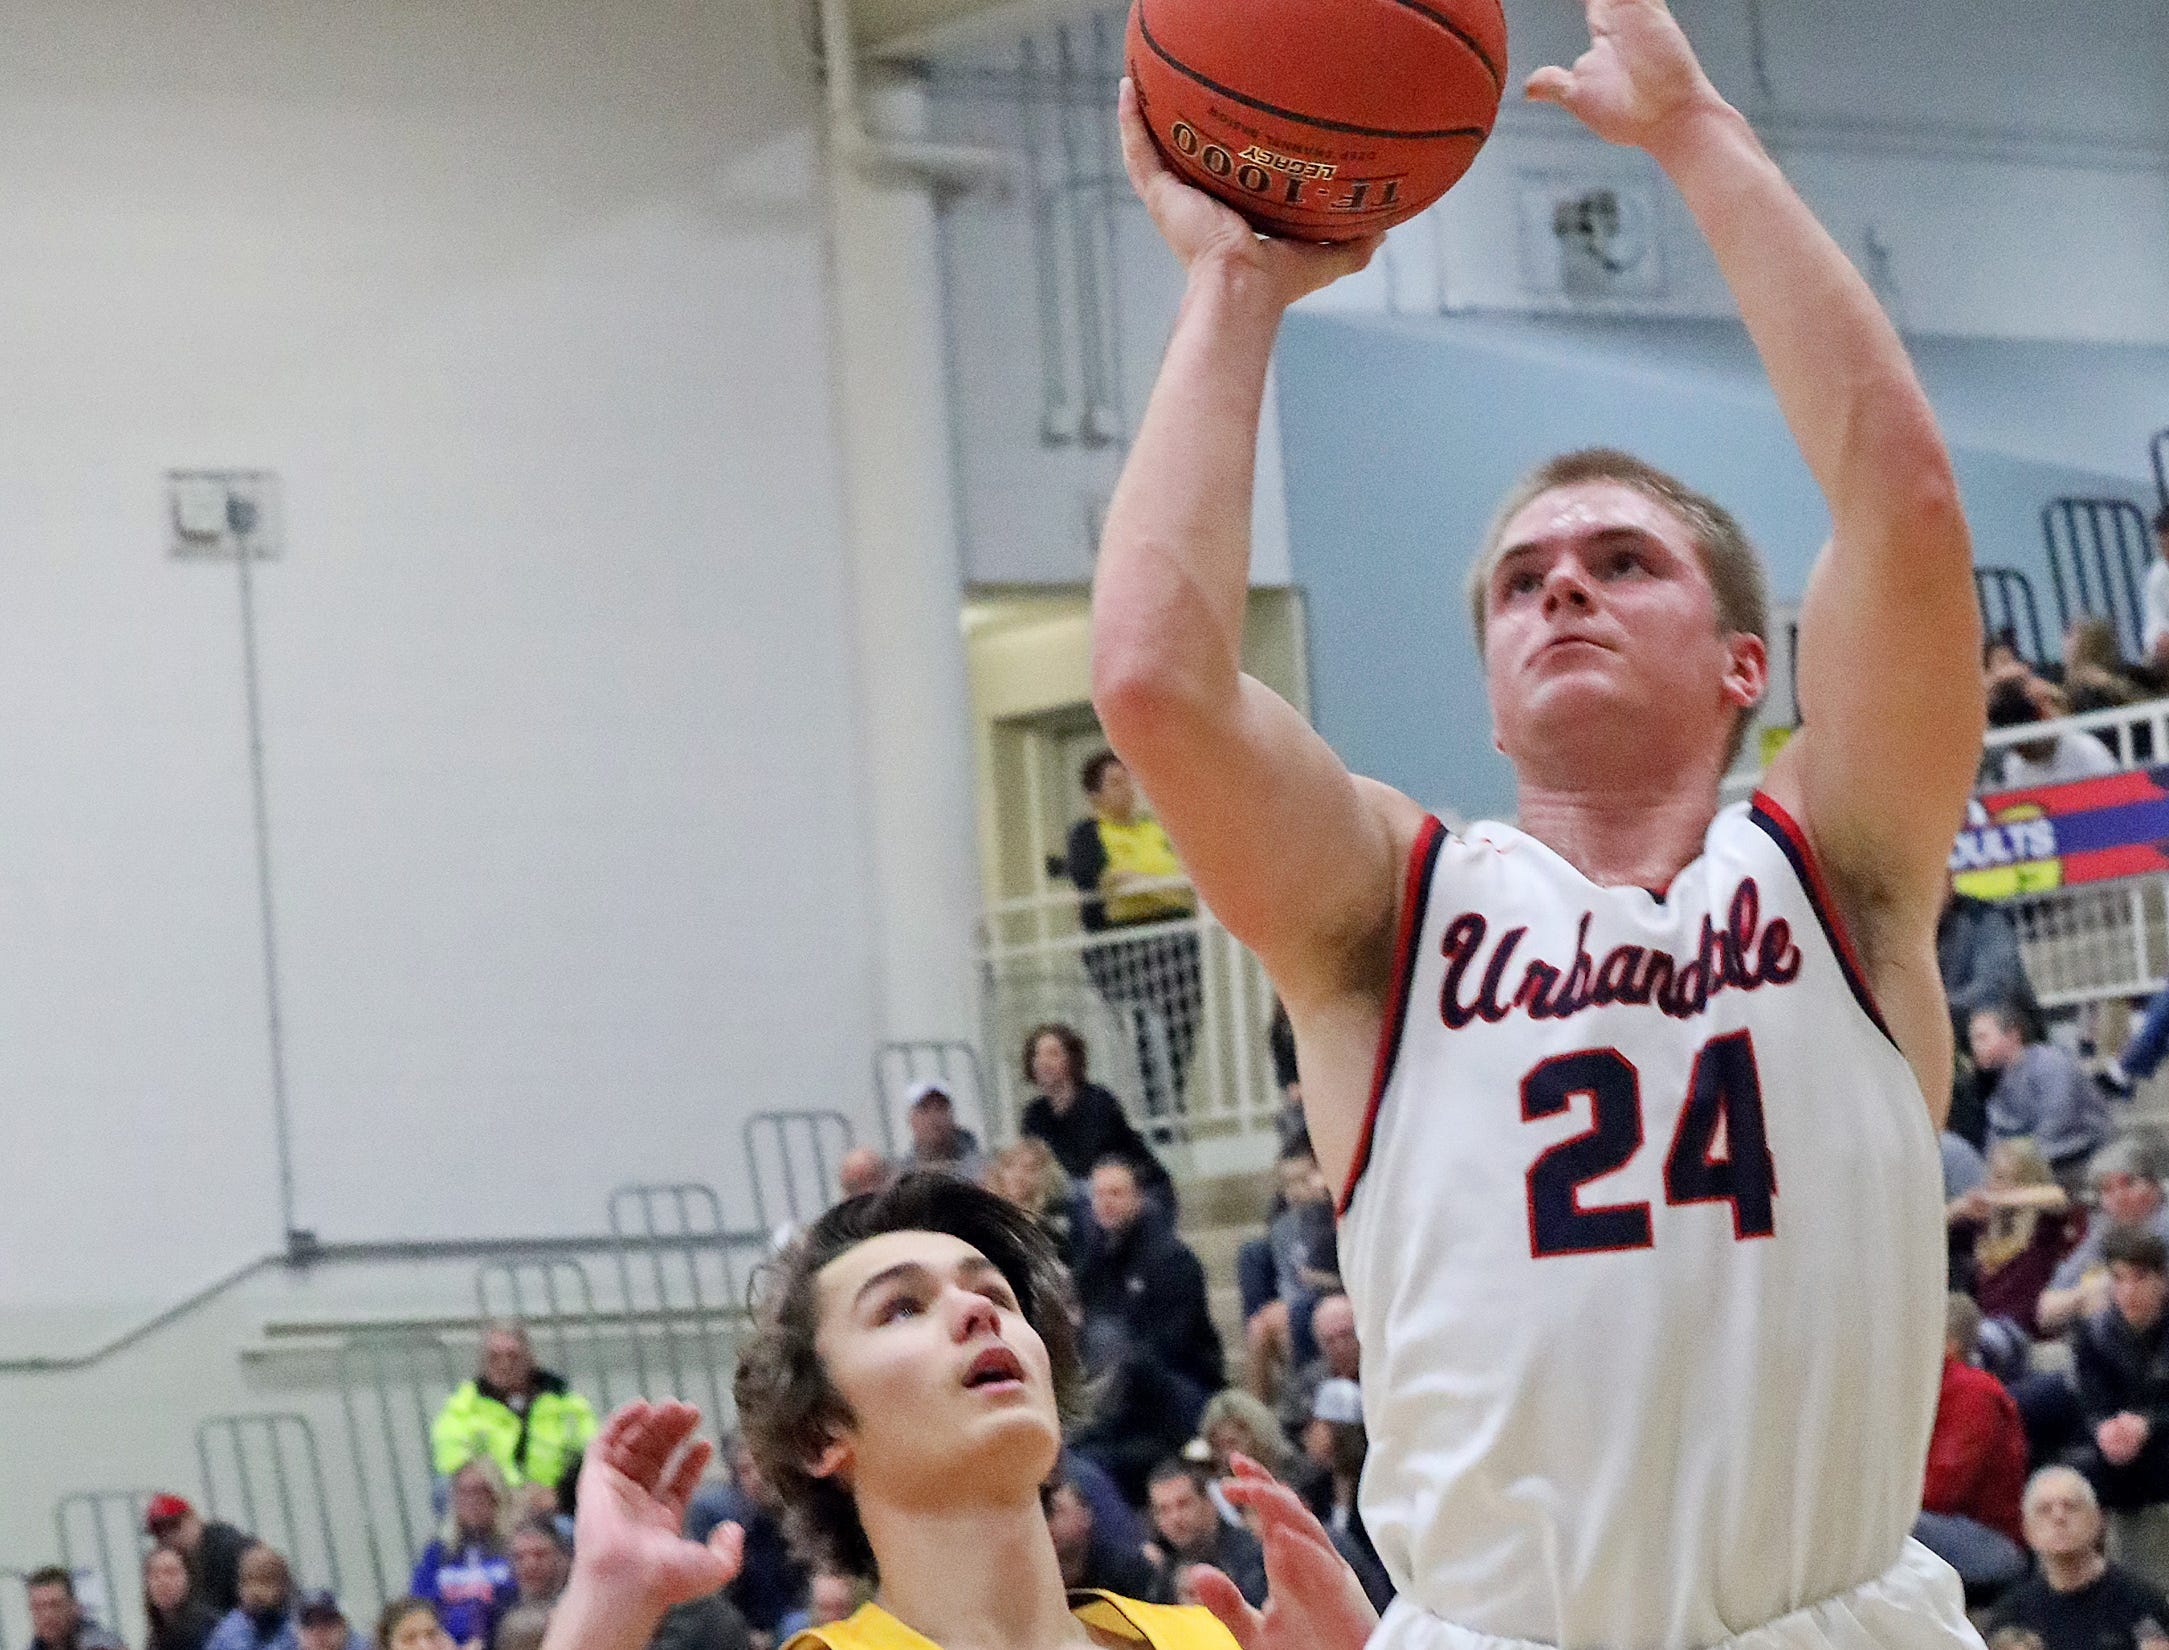 Urbandale senior guard Will Pattison shoots for two as the Ankeny Hawks compete against the Urbandale J-Hawks in high school basketball on Friday, Dec. 14, 2018 at Urbandale High School. Ankeny won 62 to 52 to remain undefeated at 6-0.